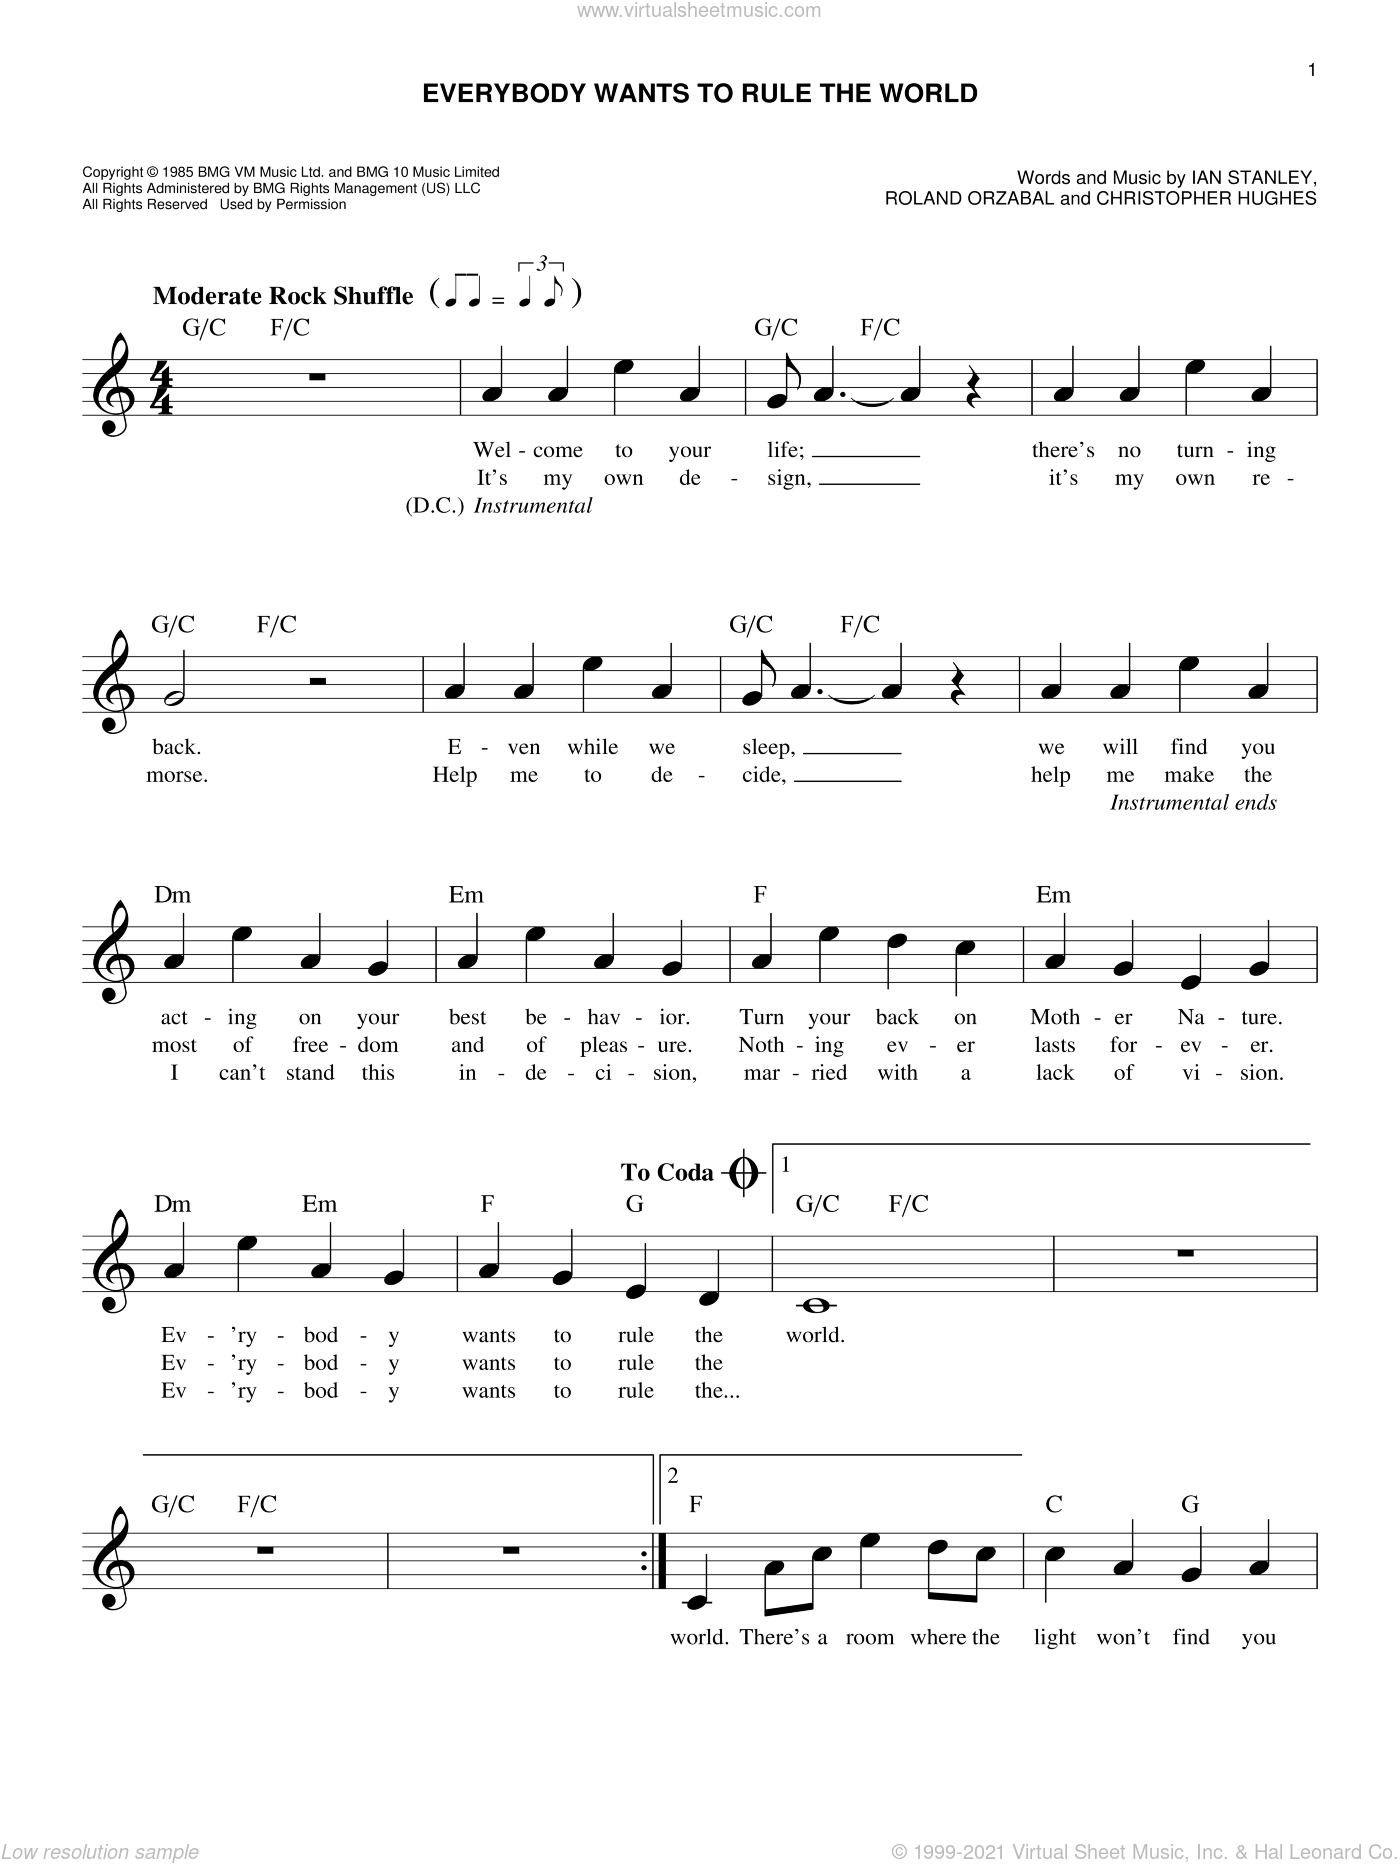 Everybody Wants To Rule The World sheet music for voice and other instruments (fake book) by Tears For Fears, Christopher Hughes, Ian Stanley and Roland Orzabal, intermediate skill level